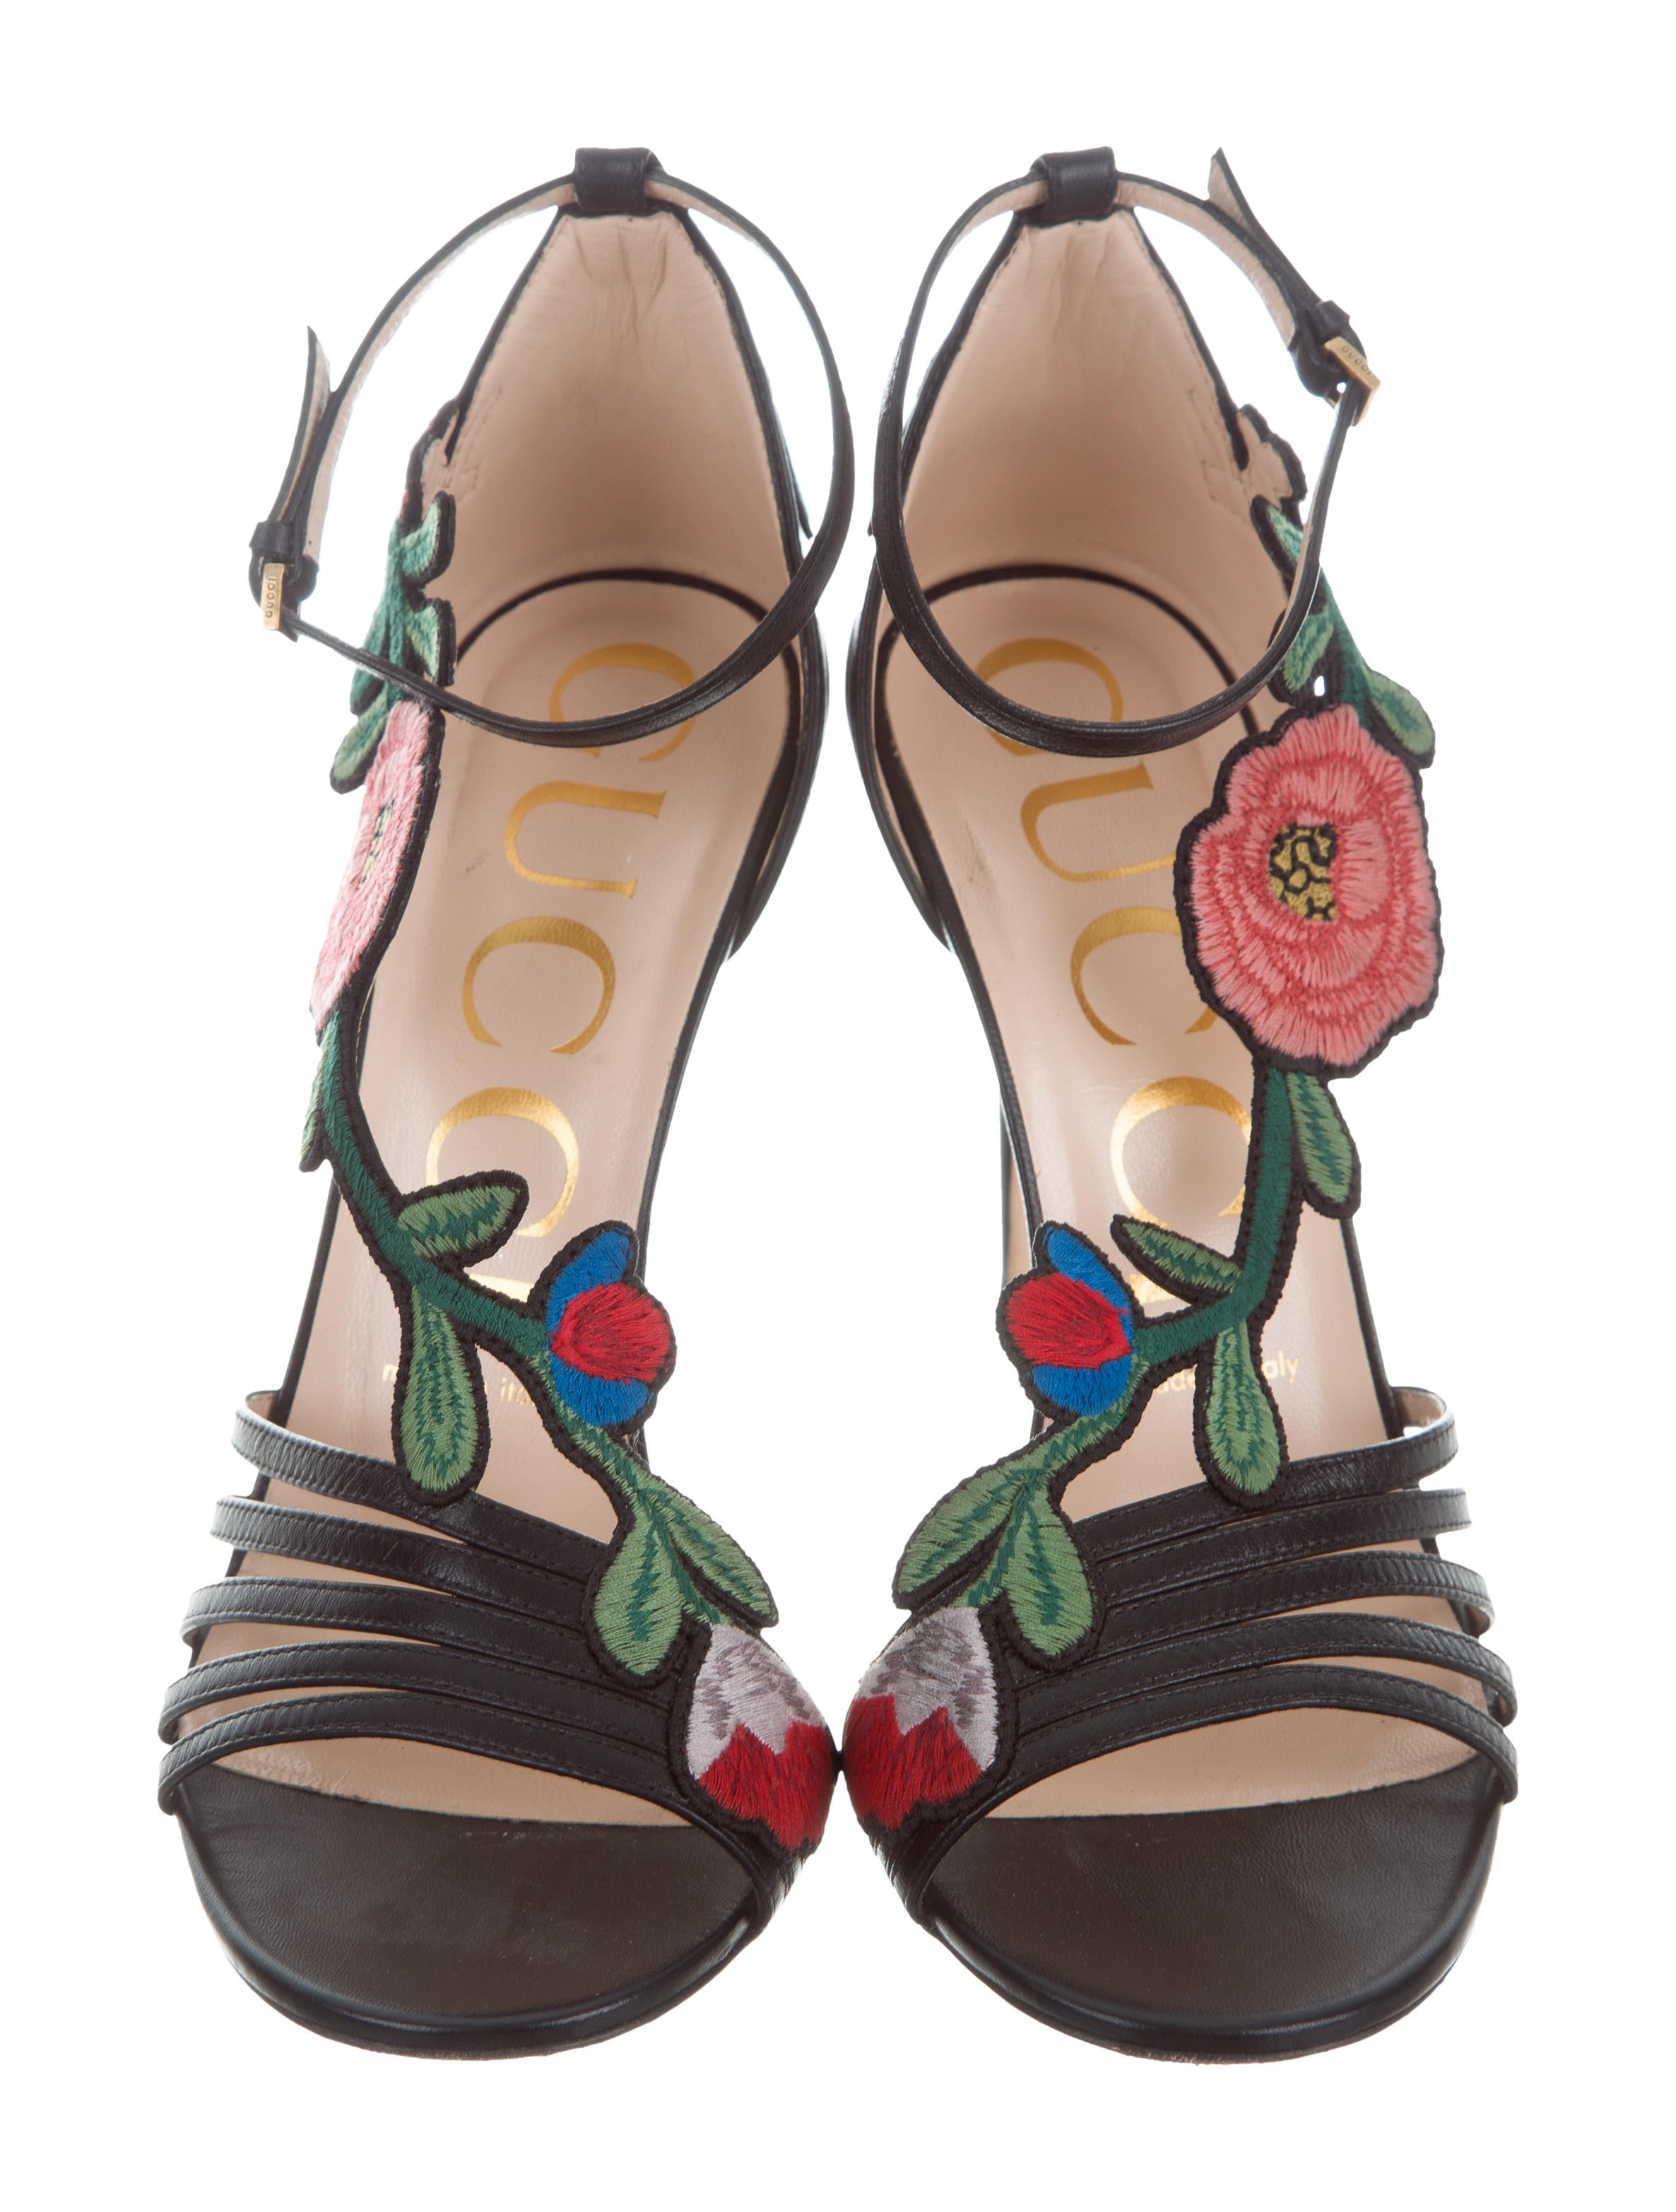 gucci 2017 floral-embroidered sandals - shoes